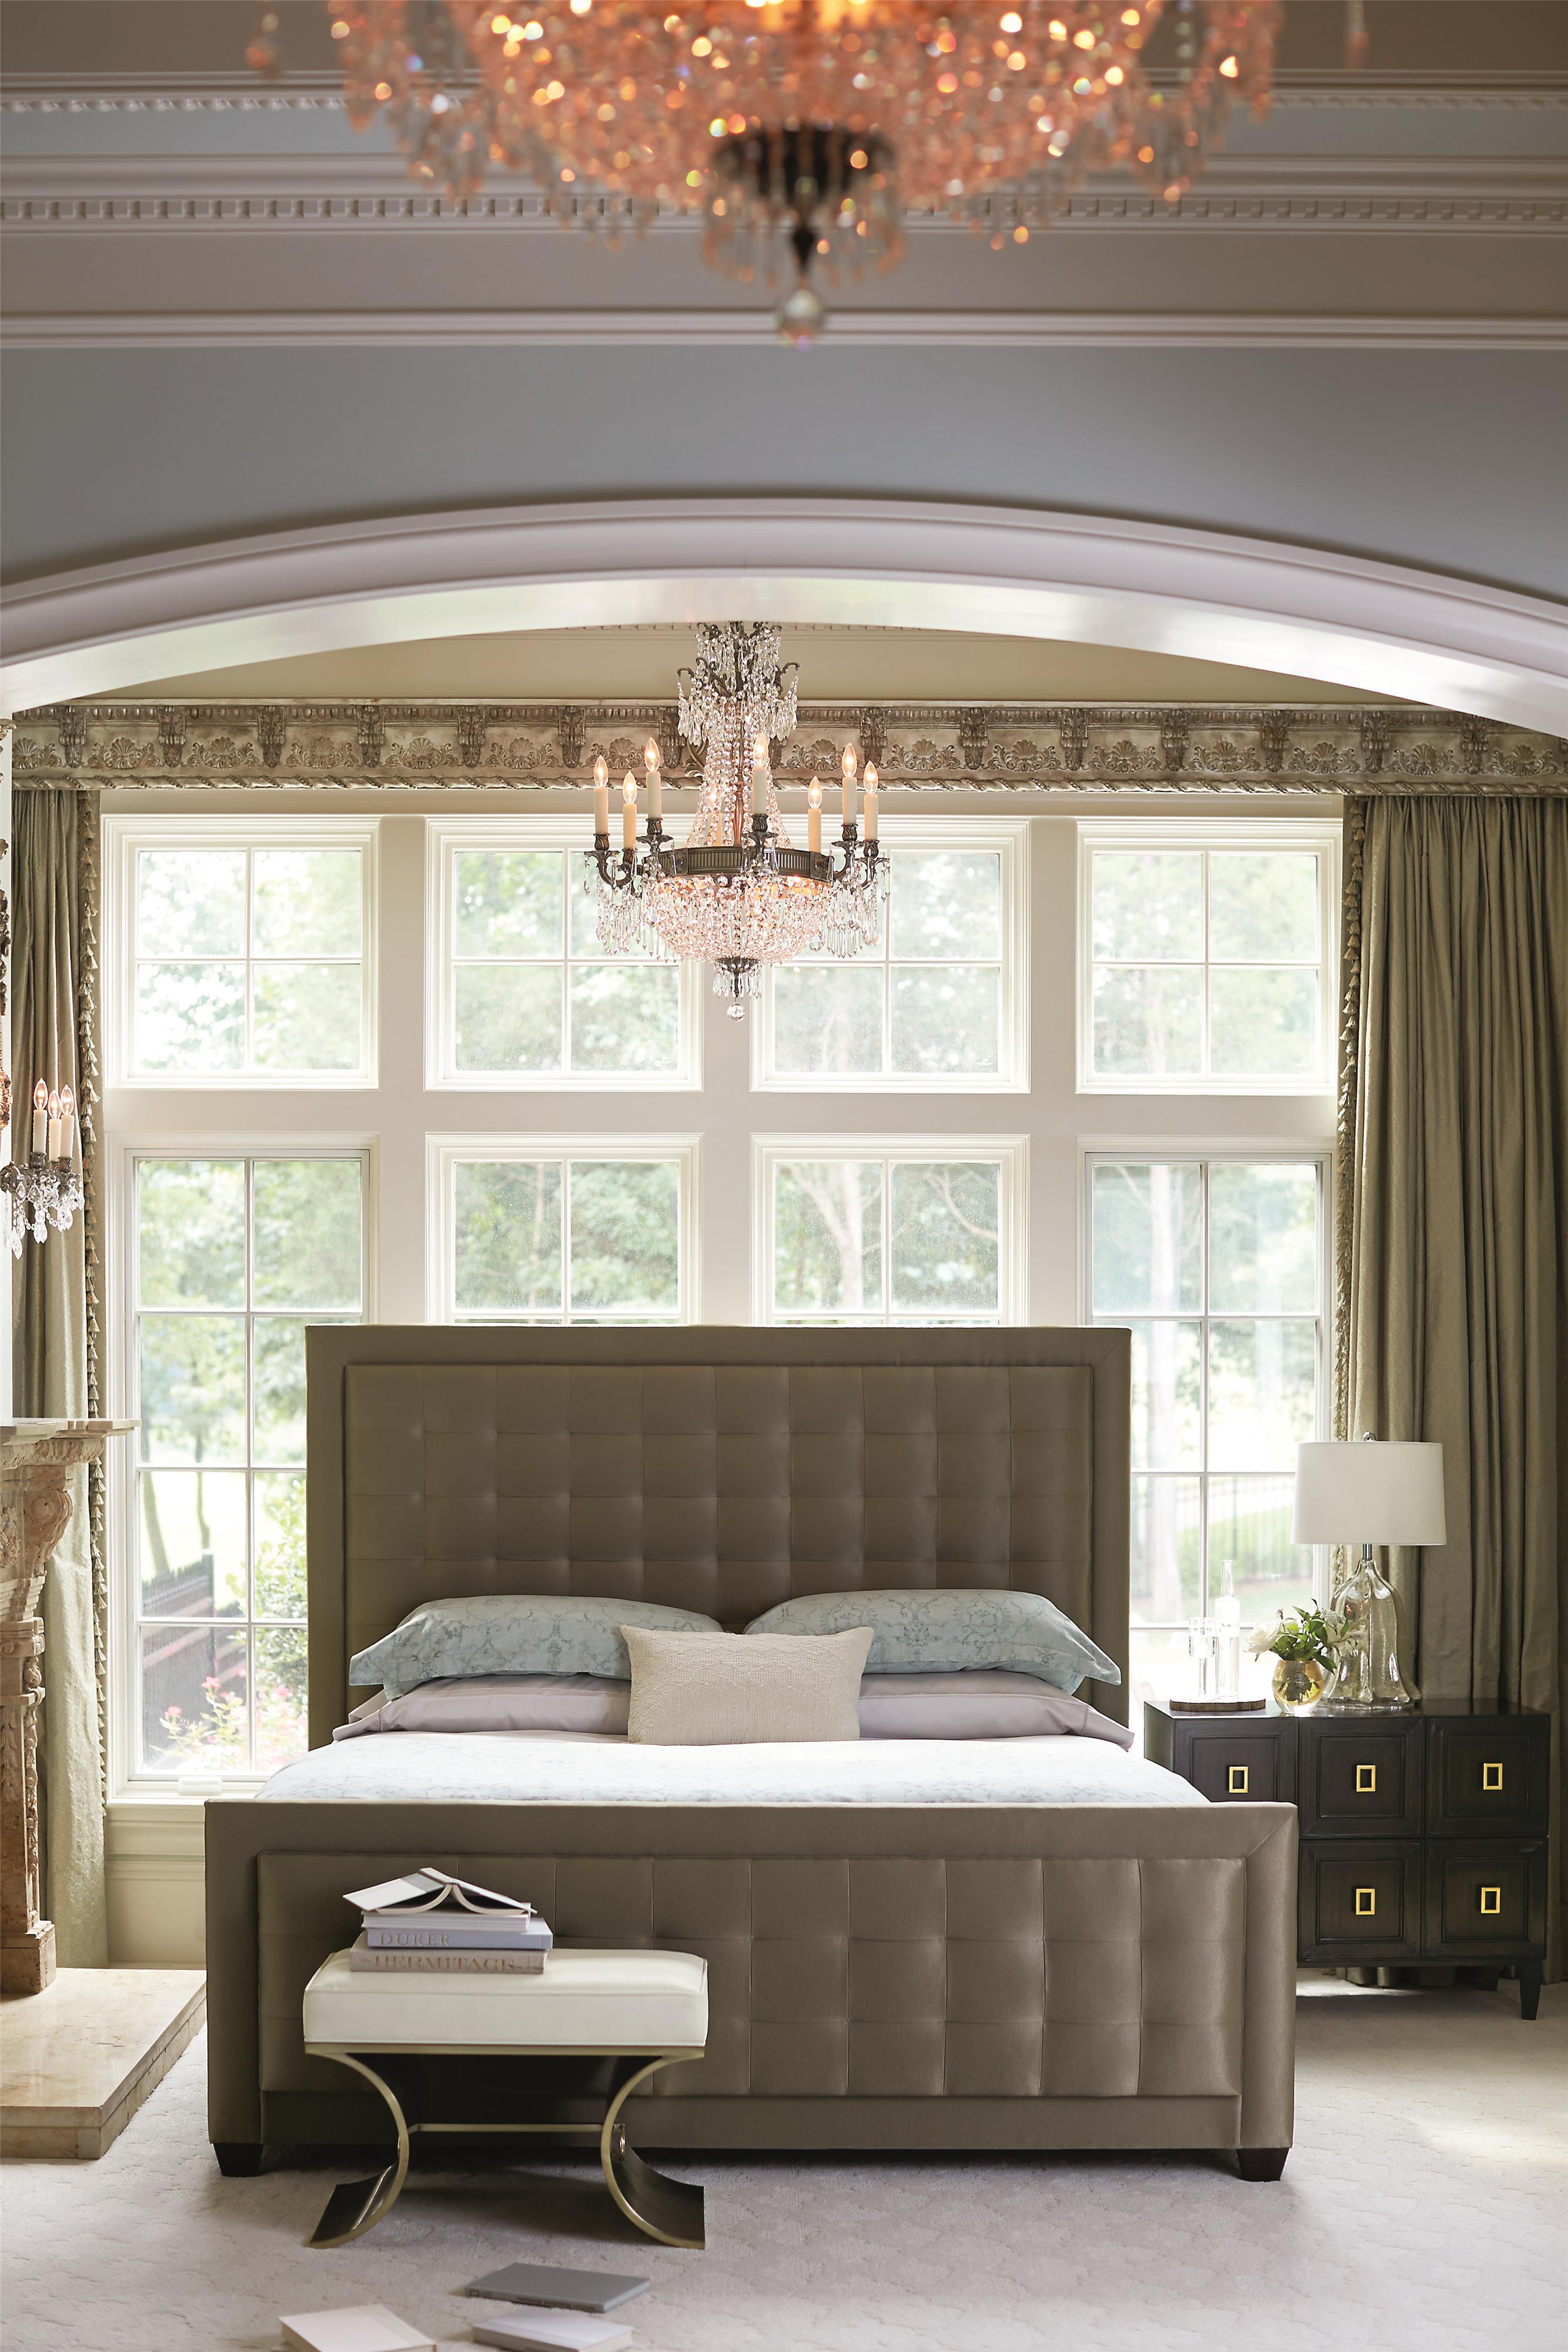 Jet Set Queen Bedroom Group at Williams & Kay